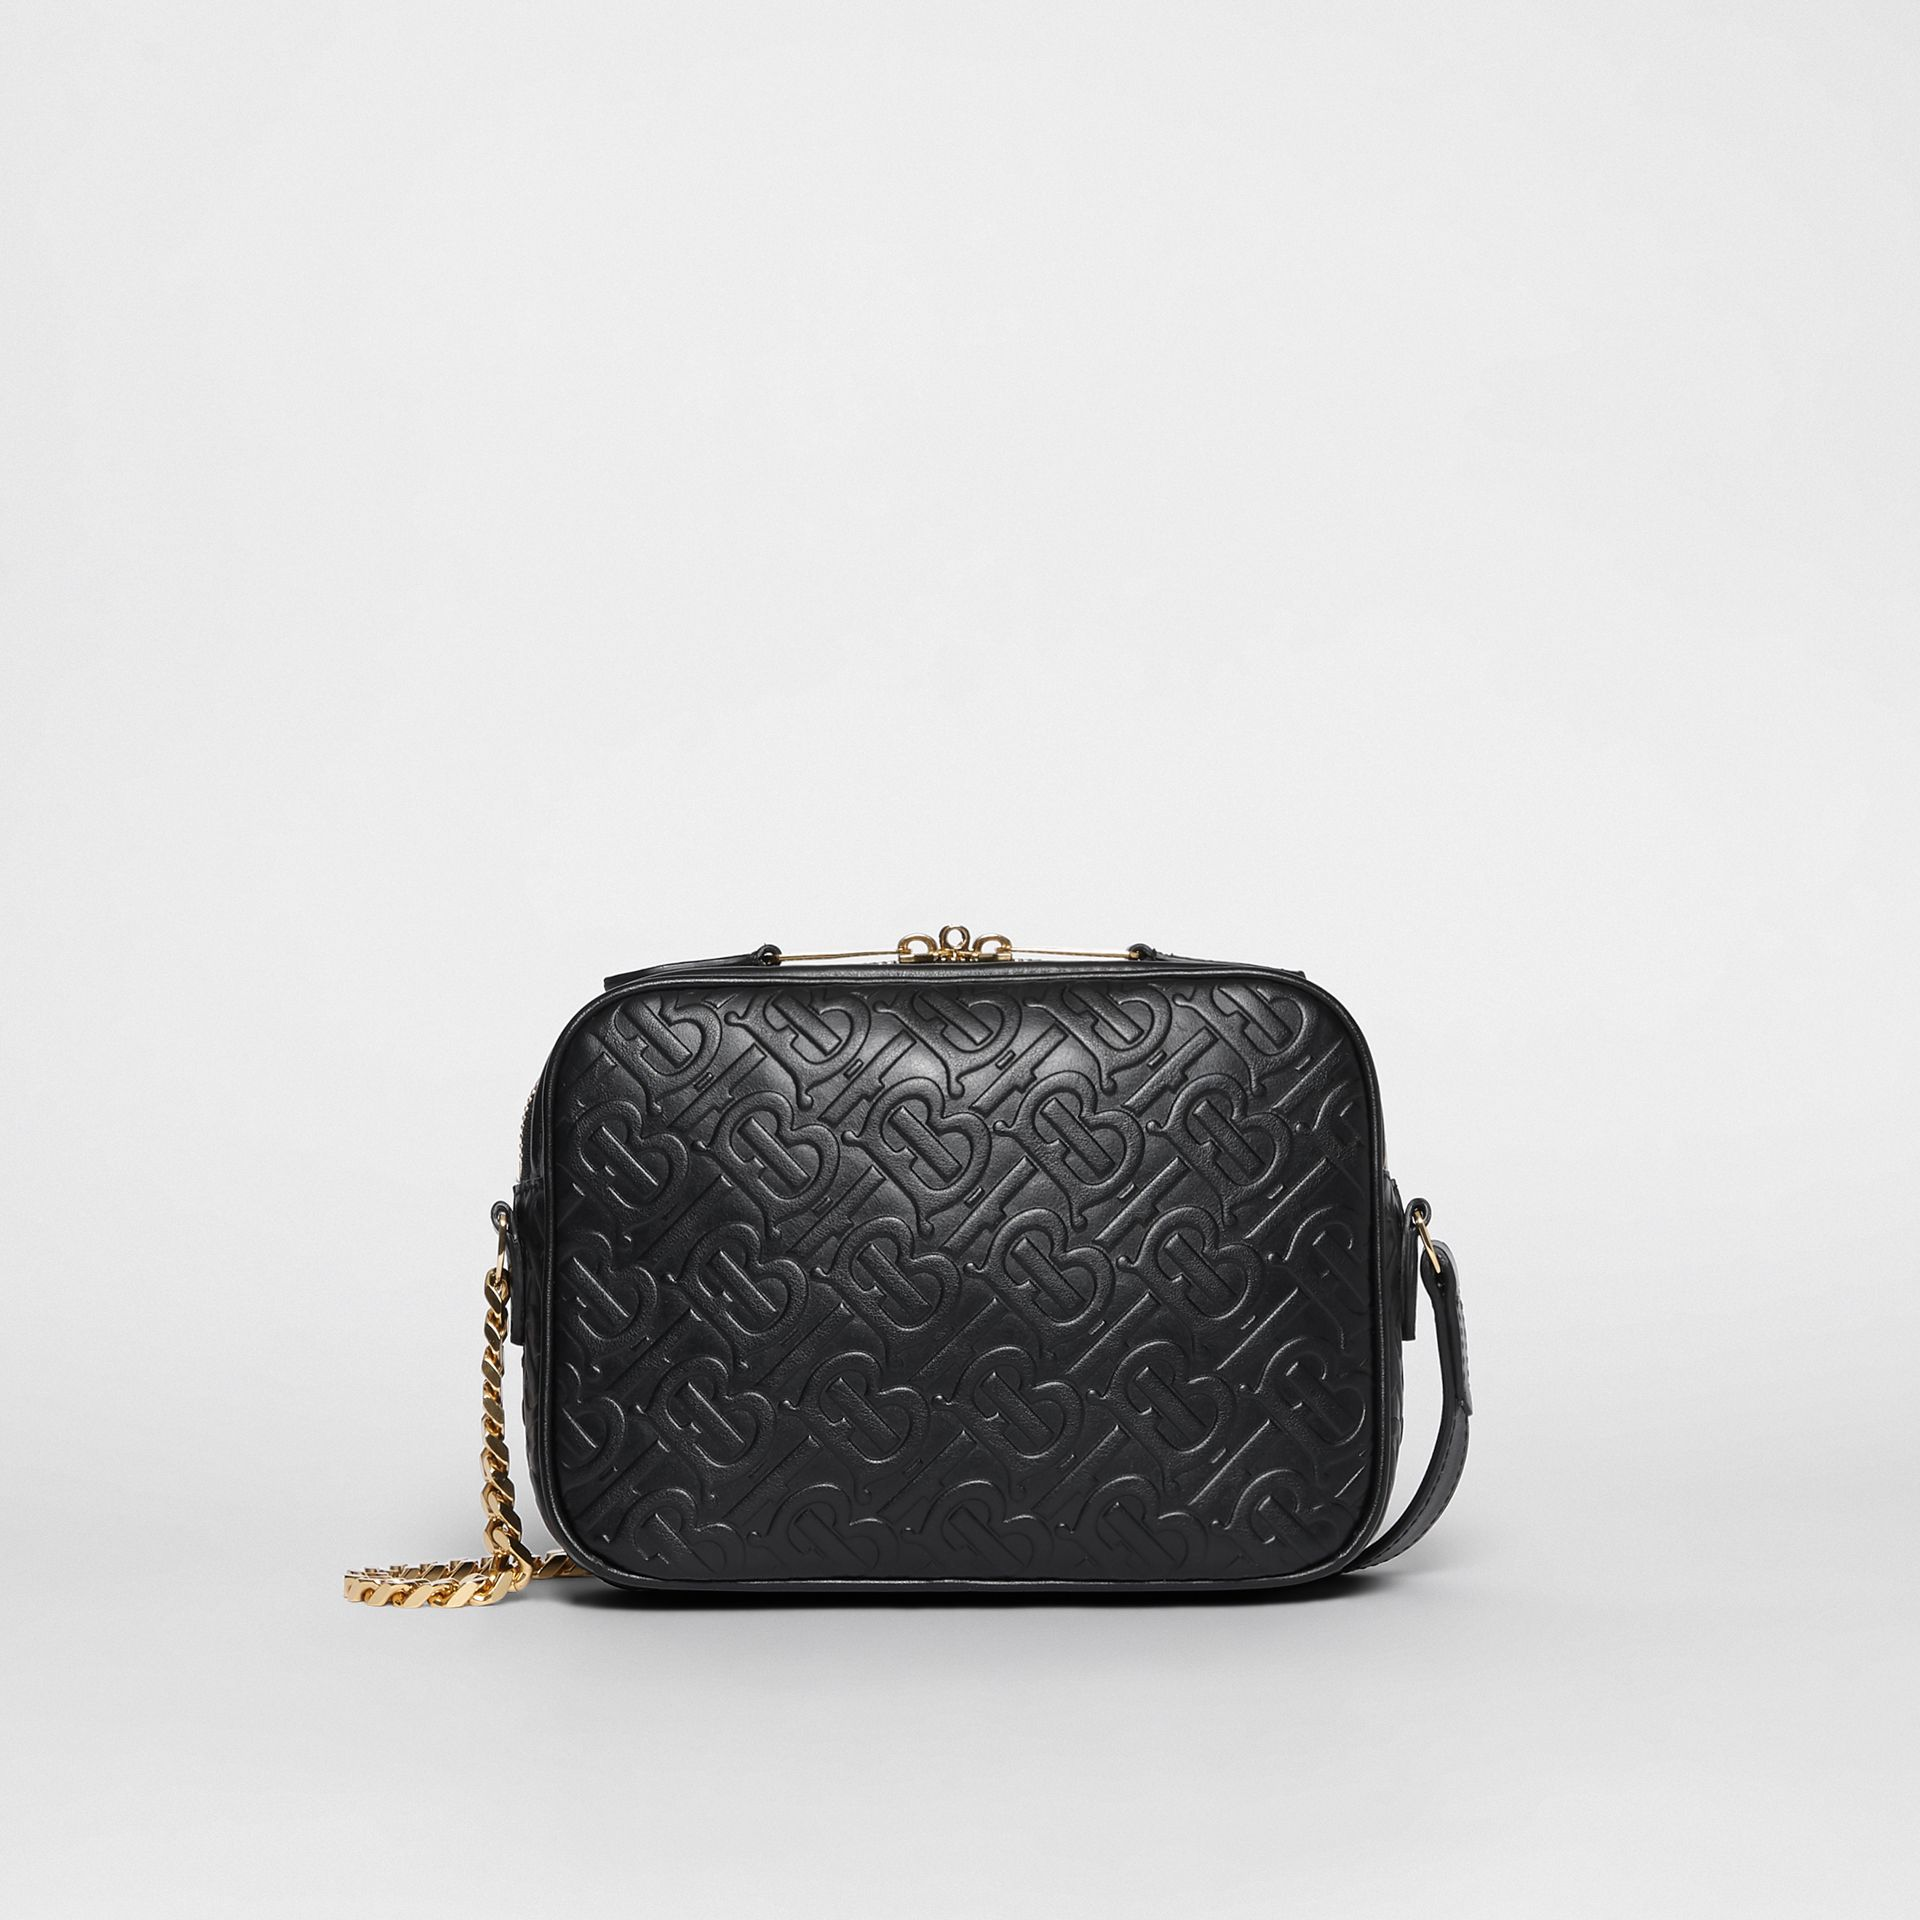 Monogram Leather Camera Bag in Black - Women | Burberry - gallery image 7